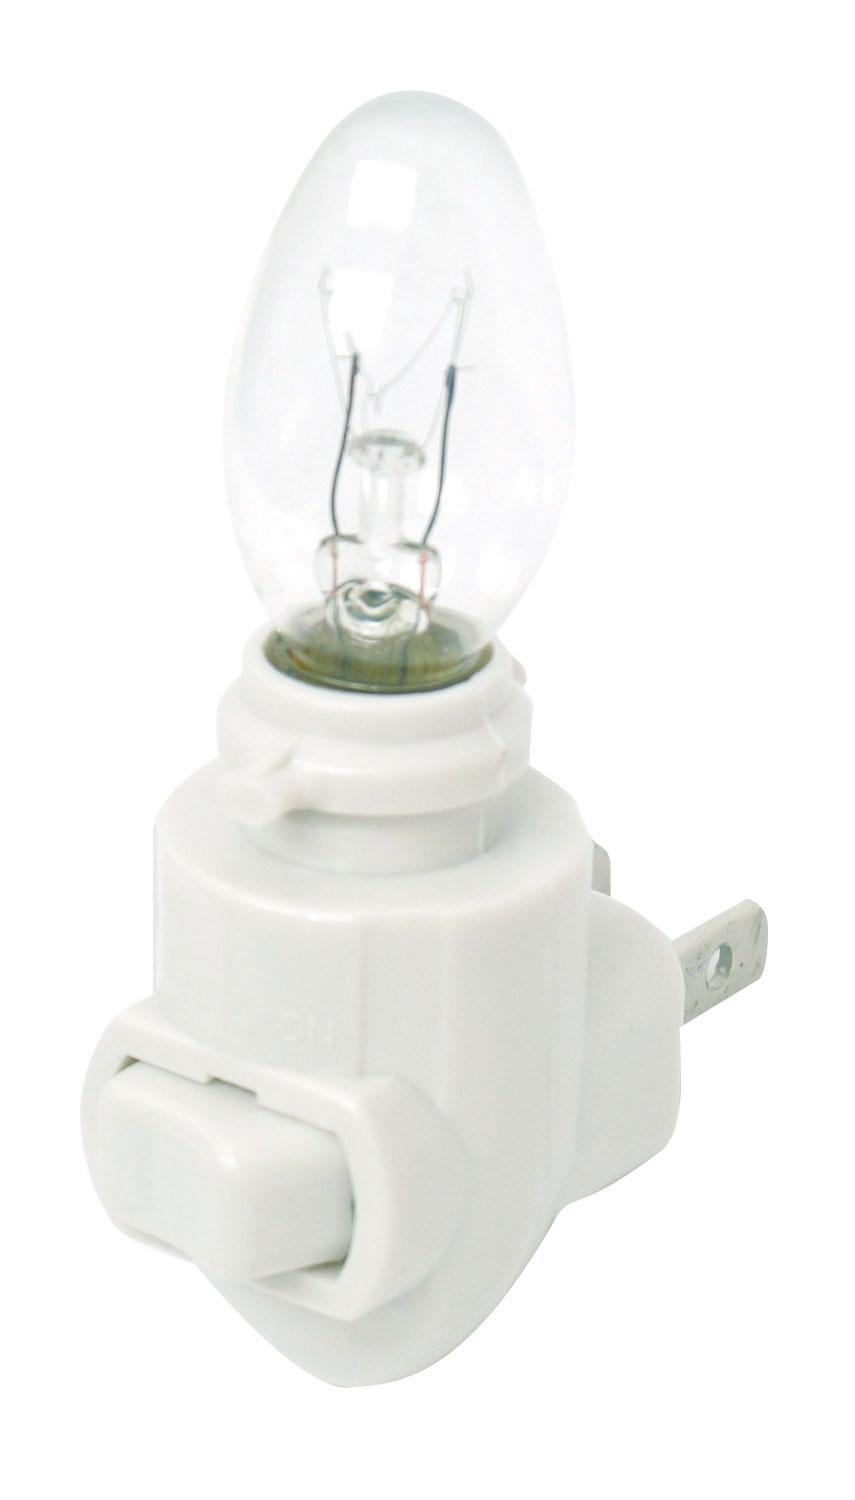 White Night Light with 4w Bulb - 50 Pack